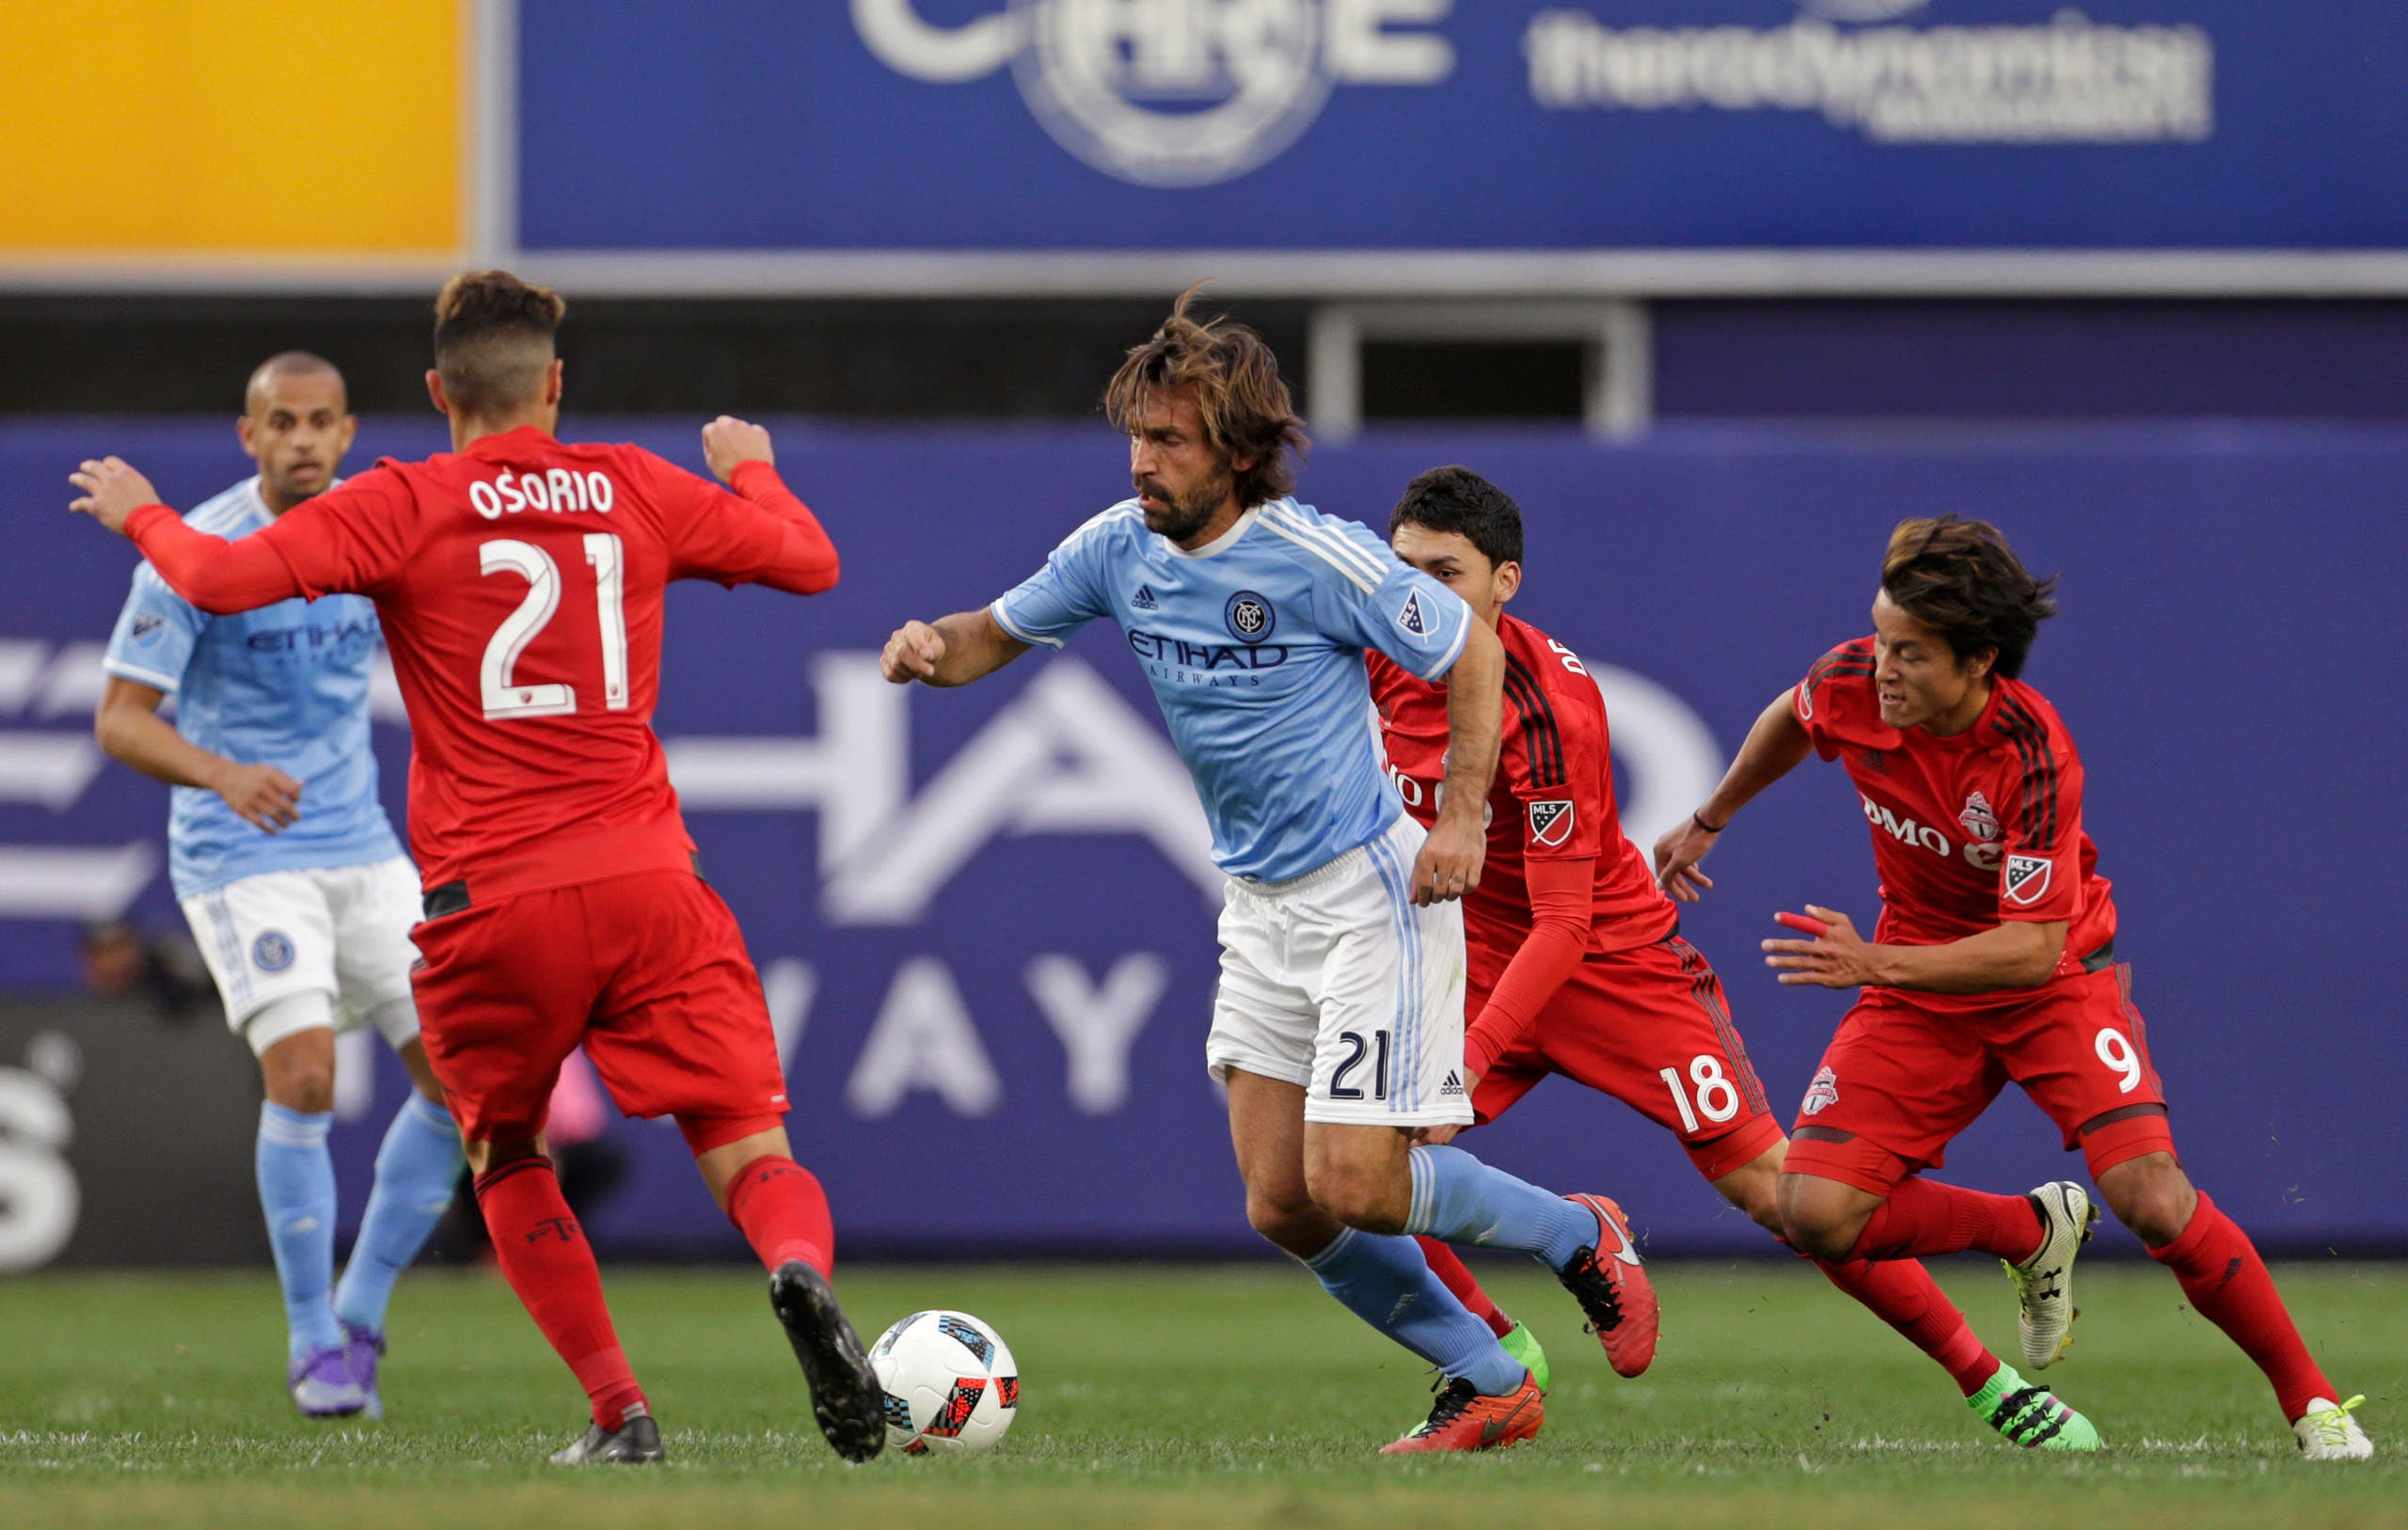 New York City FC midfielder Andrea Pirlo (21) controls the ball in front of Toronto FC midfielder Jonathan Osorio (21) during the first half of an MLS soccer game at Yankee Stadium on Sunday, March 13, 2016, in New York. (AP)